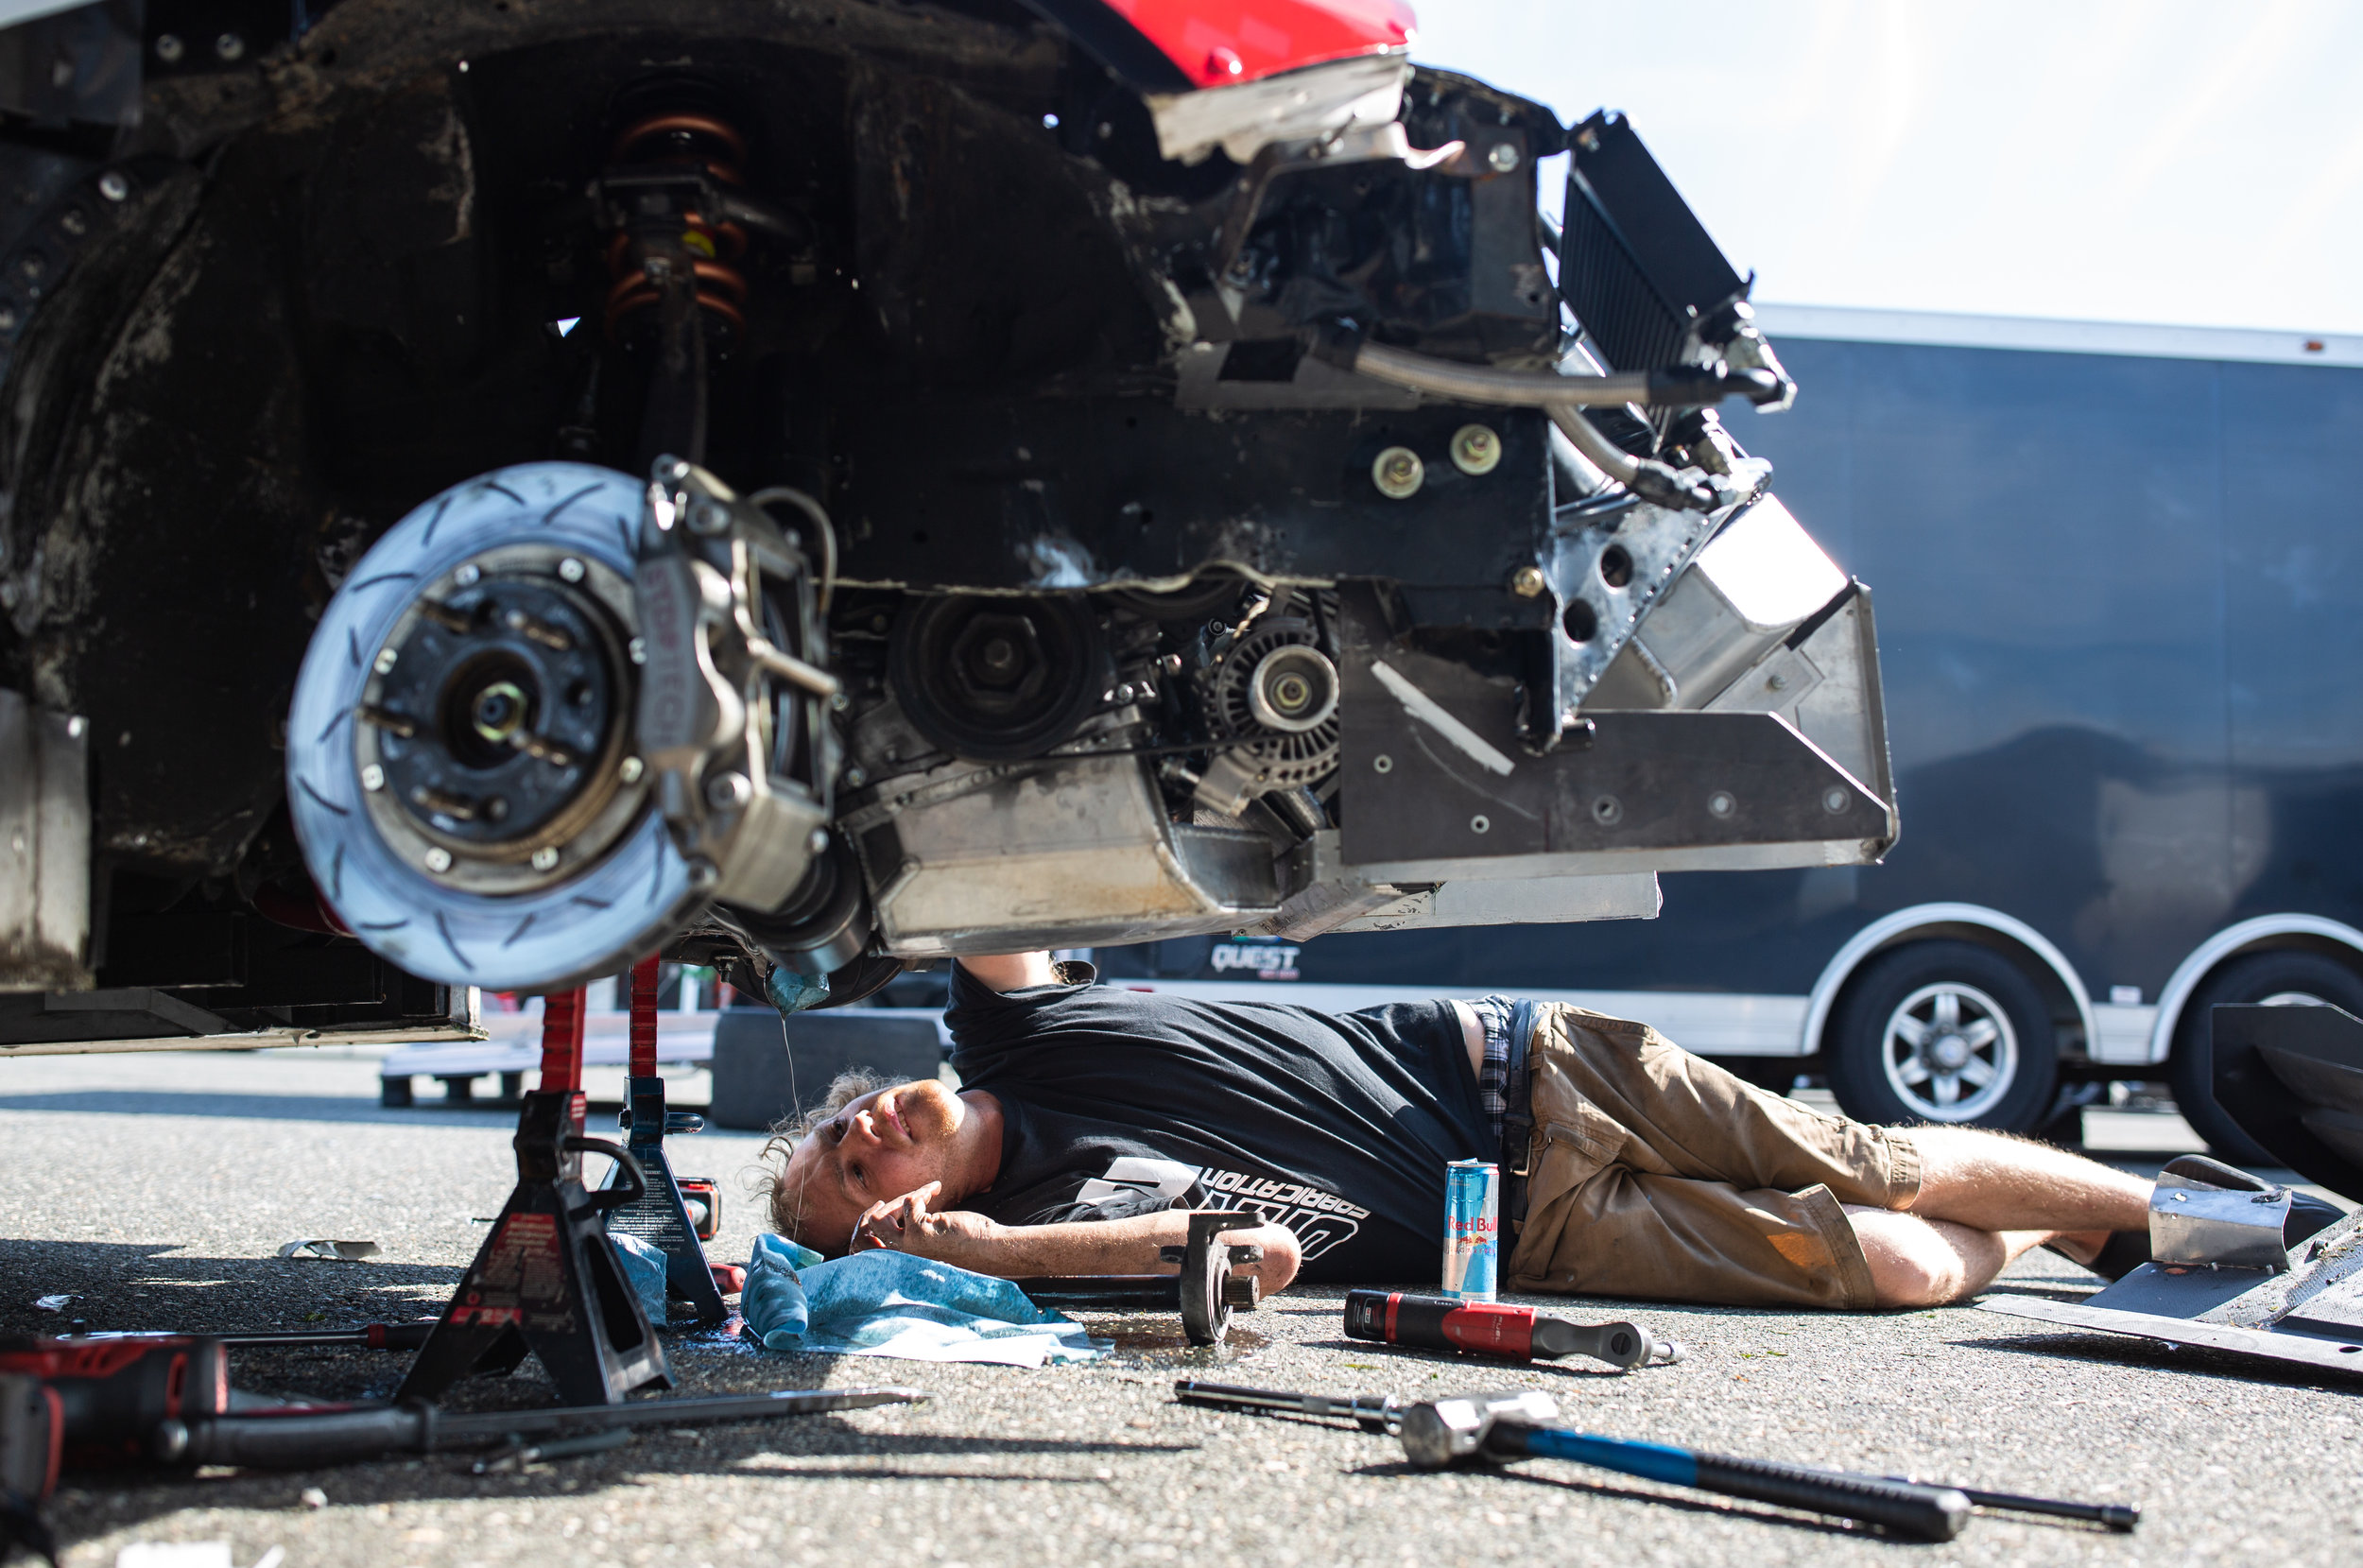 Mitchell Hemmen works on removing a severed axle in the K-Tuned Integra Type R that lodged itself in the car's transmission